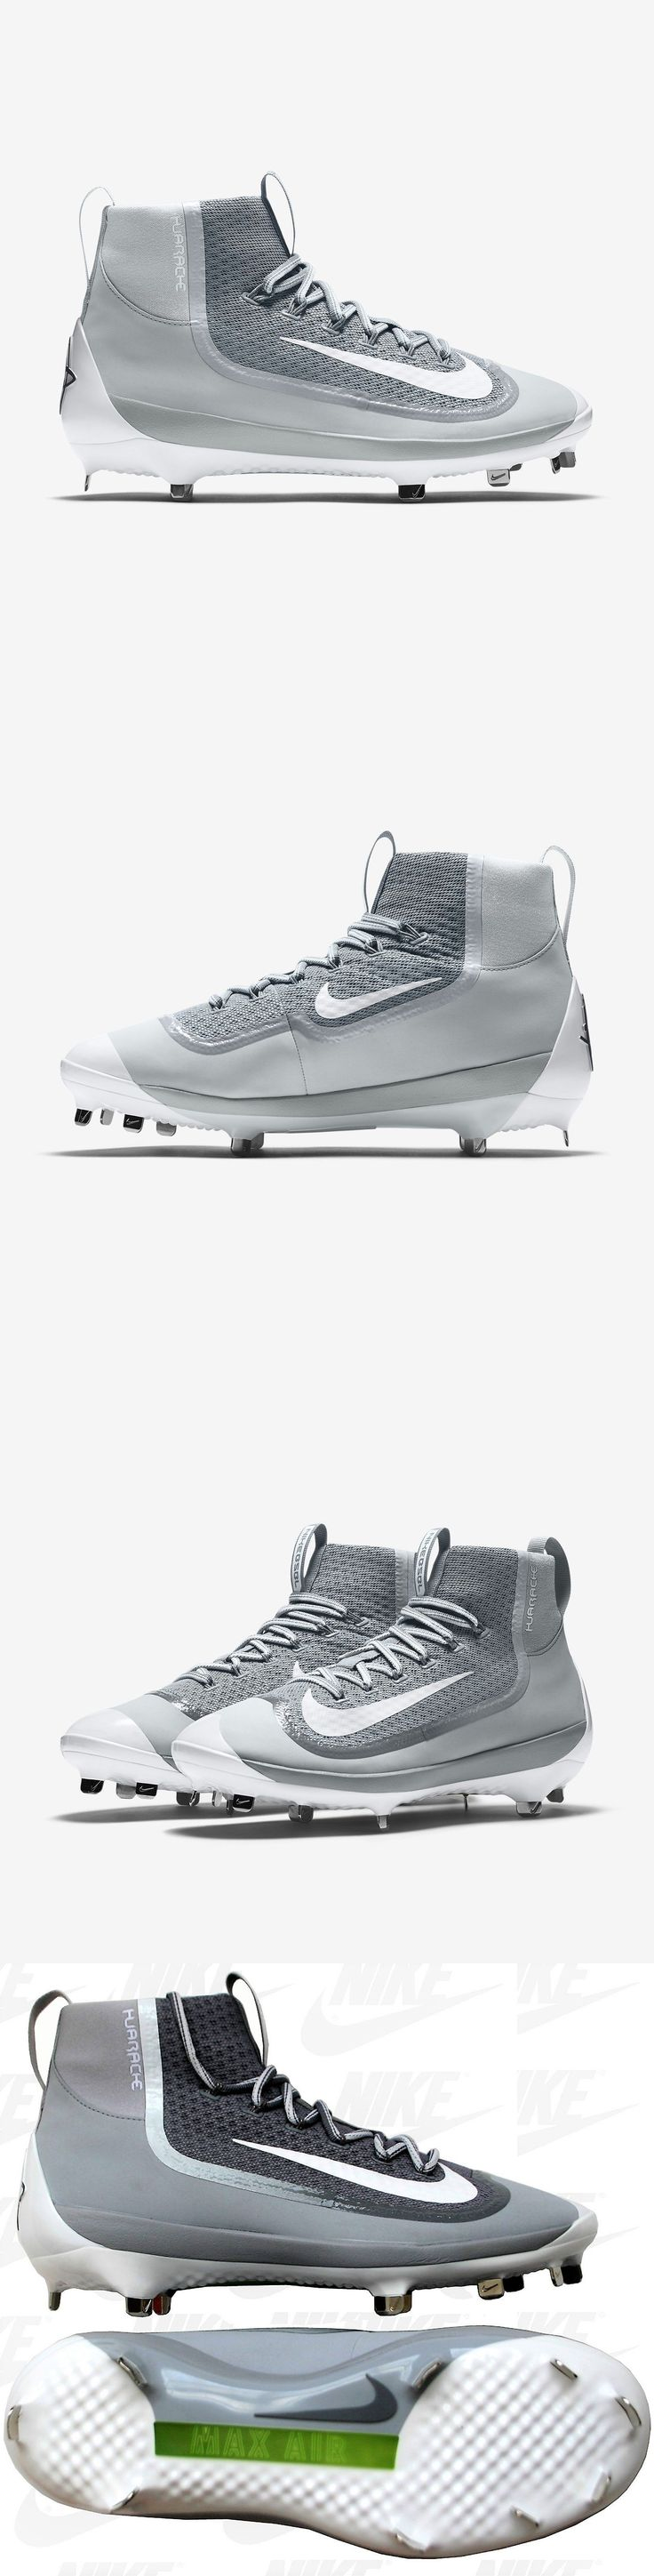 Mens 159059: New Nike Air Huarache 2K Filth Elite Mid Metal Baseball Cleats Grey 749359-011 -> BUY IT NOW ONLY: $59.9 on eBay!